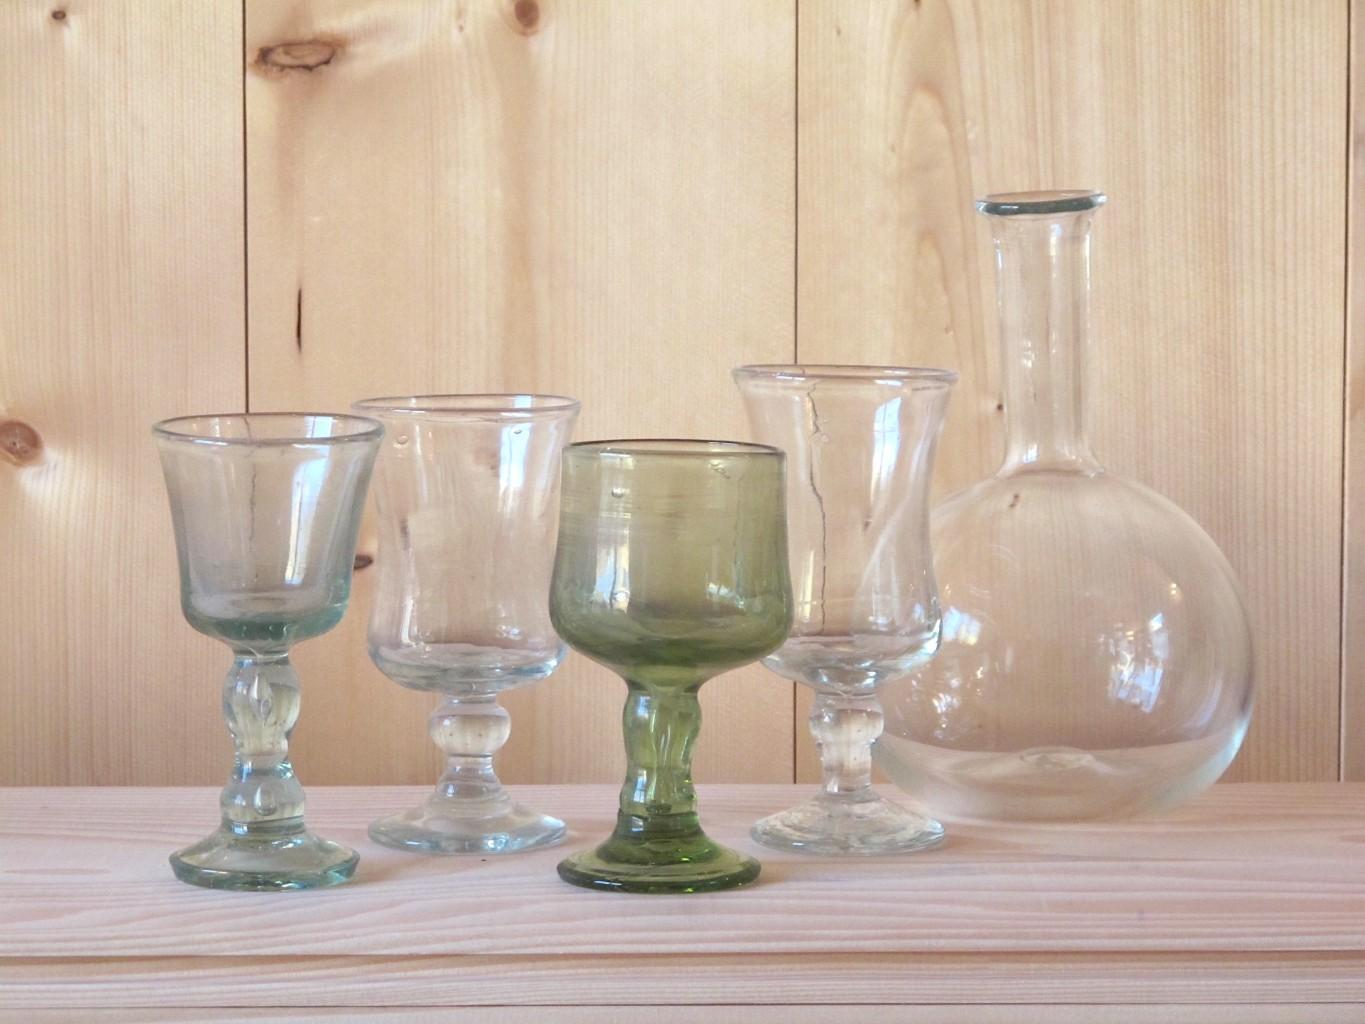 L to R: White Wine Glass, Verre Carnaval Transparent, Red Wine Glass, Verre Carnaval Transparent, Bouteille long neck